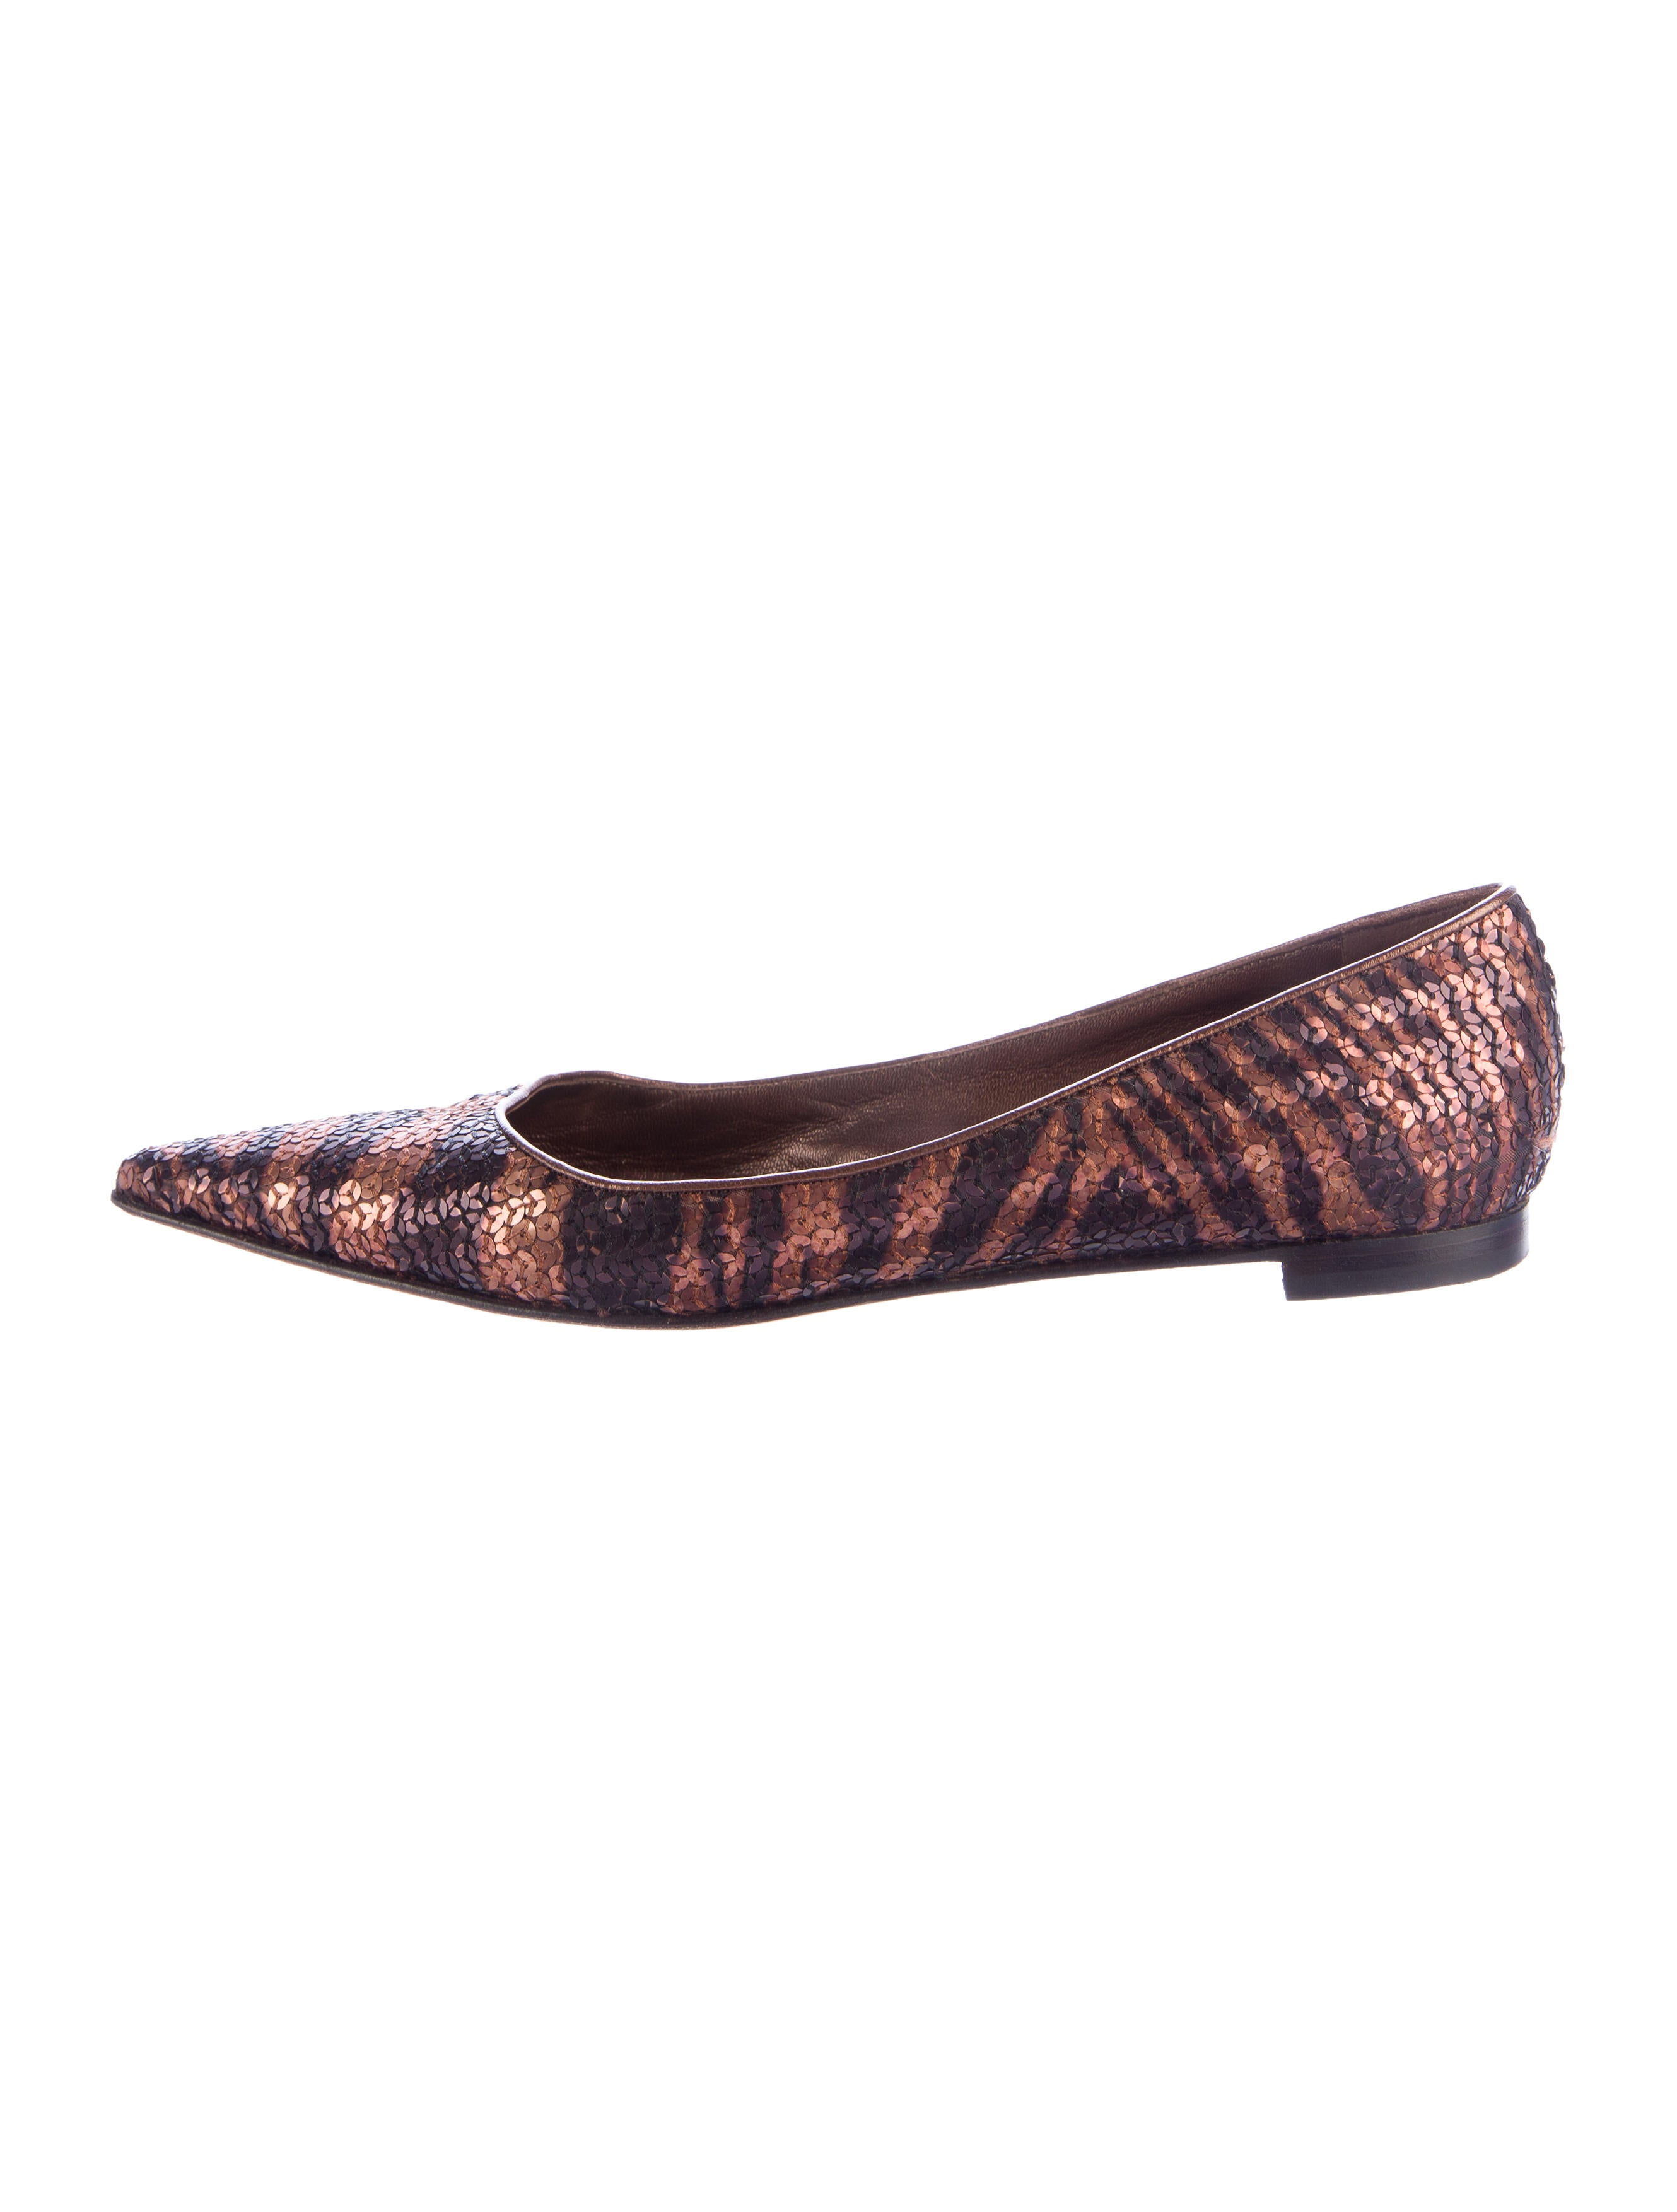 Manolo Blahnik Sequin Pointed-Toe Flats discount outlet 2NFWvPw9q